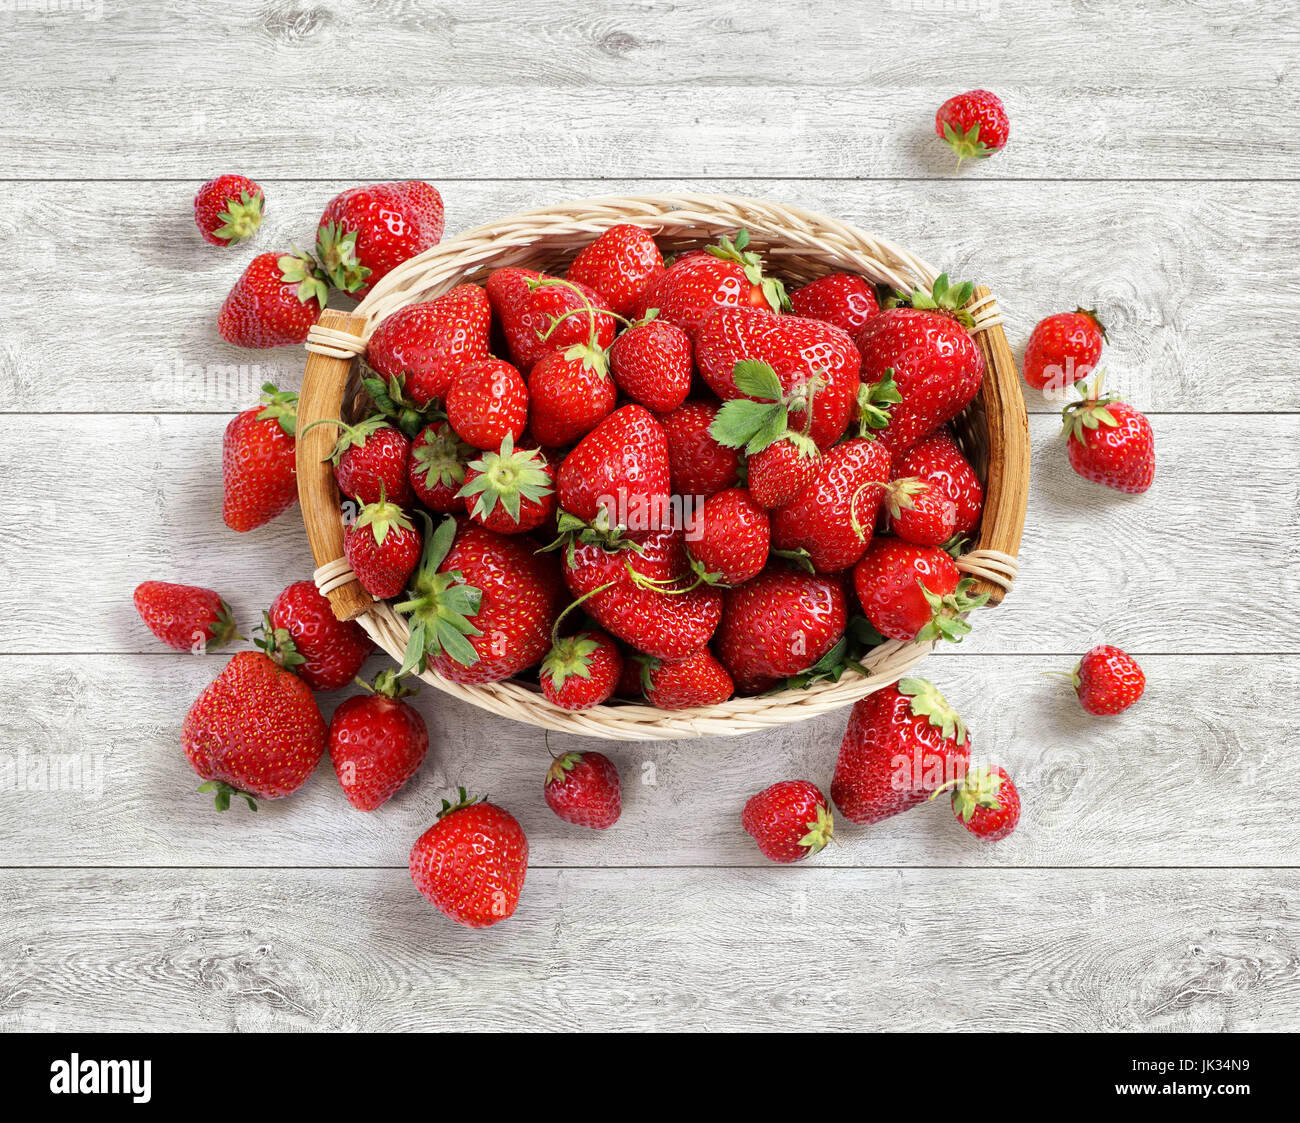 Fresh strawberry in basket on white wooden background. Top view. High resolution. Harvest Concept - Stock Image